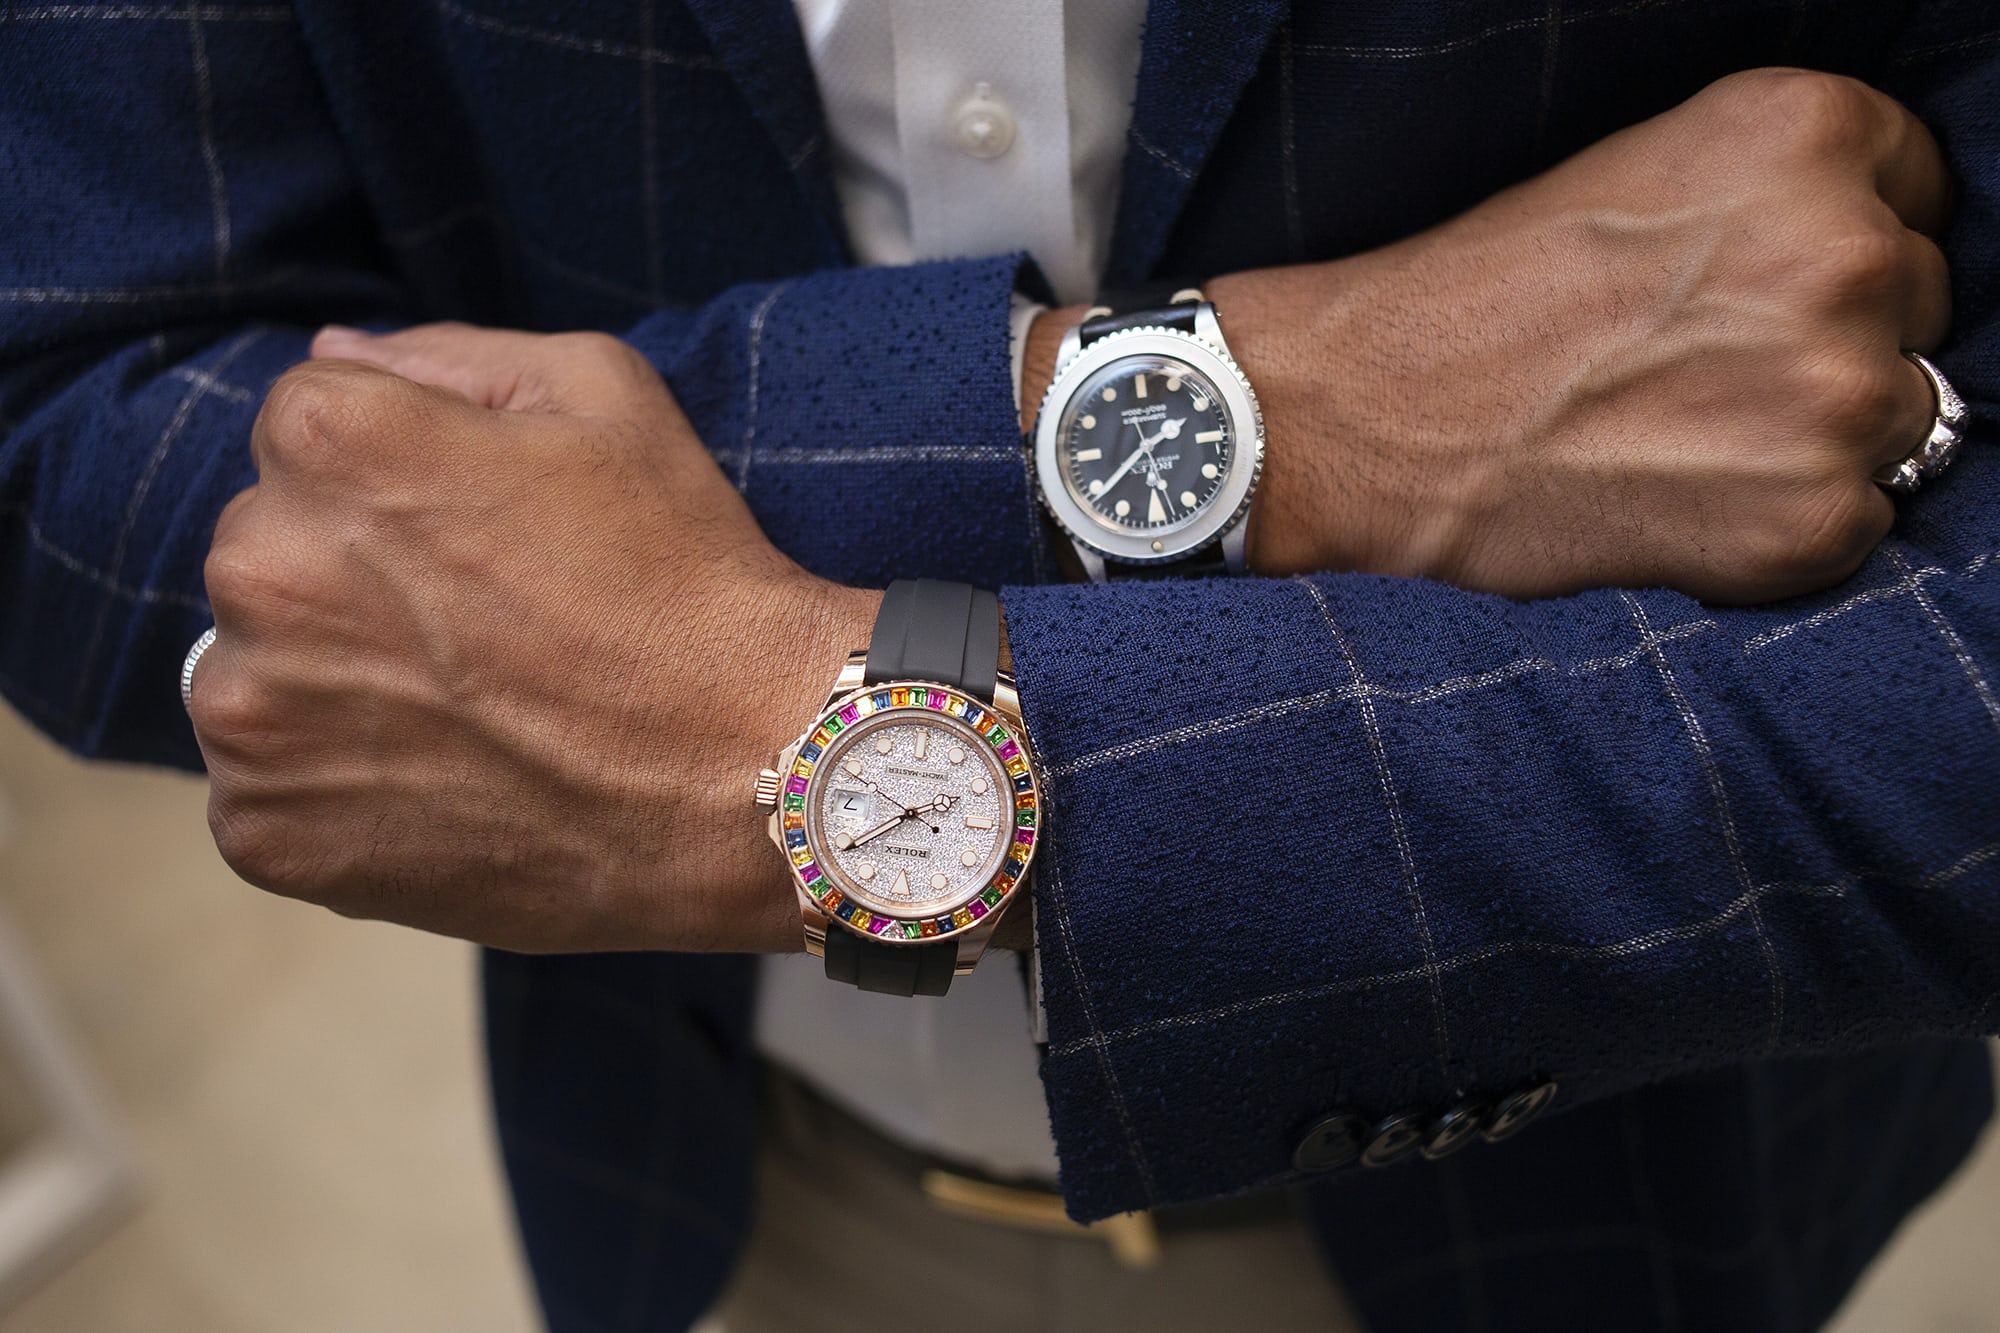 Photo Report: The Watches And Cars Of The HODINKEE Pop-Up At The UTA Artist Space In Los Angeles 3H0A0576 copy